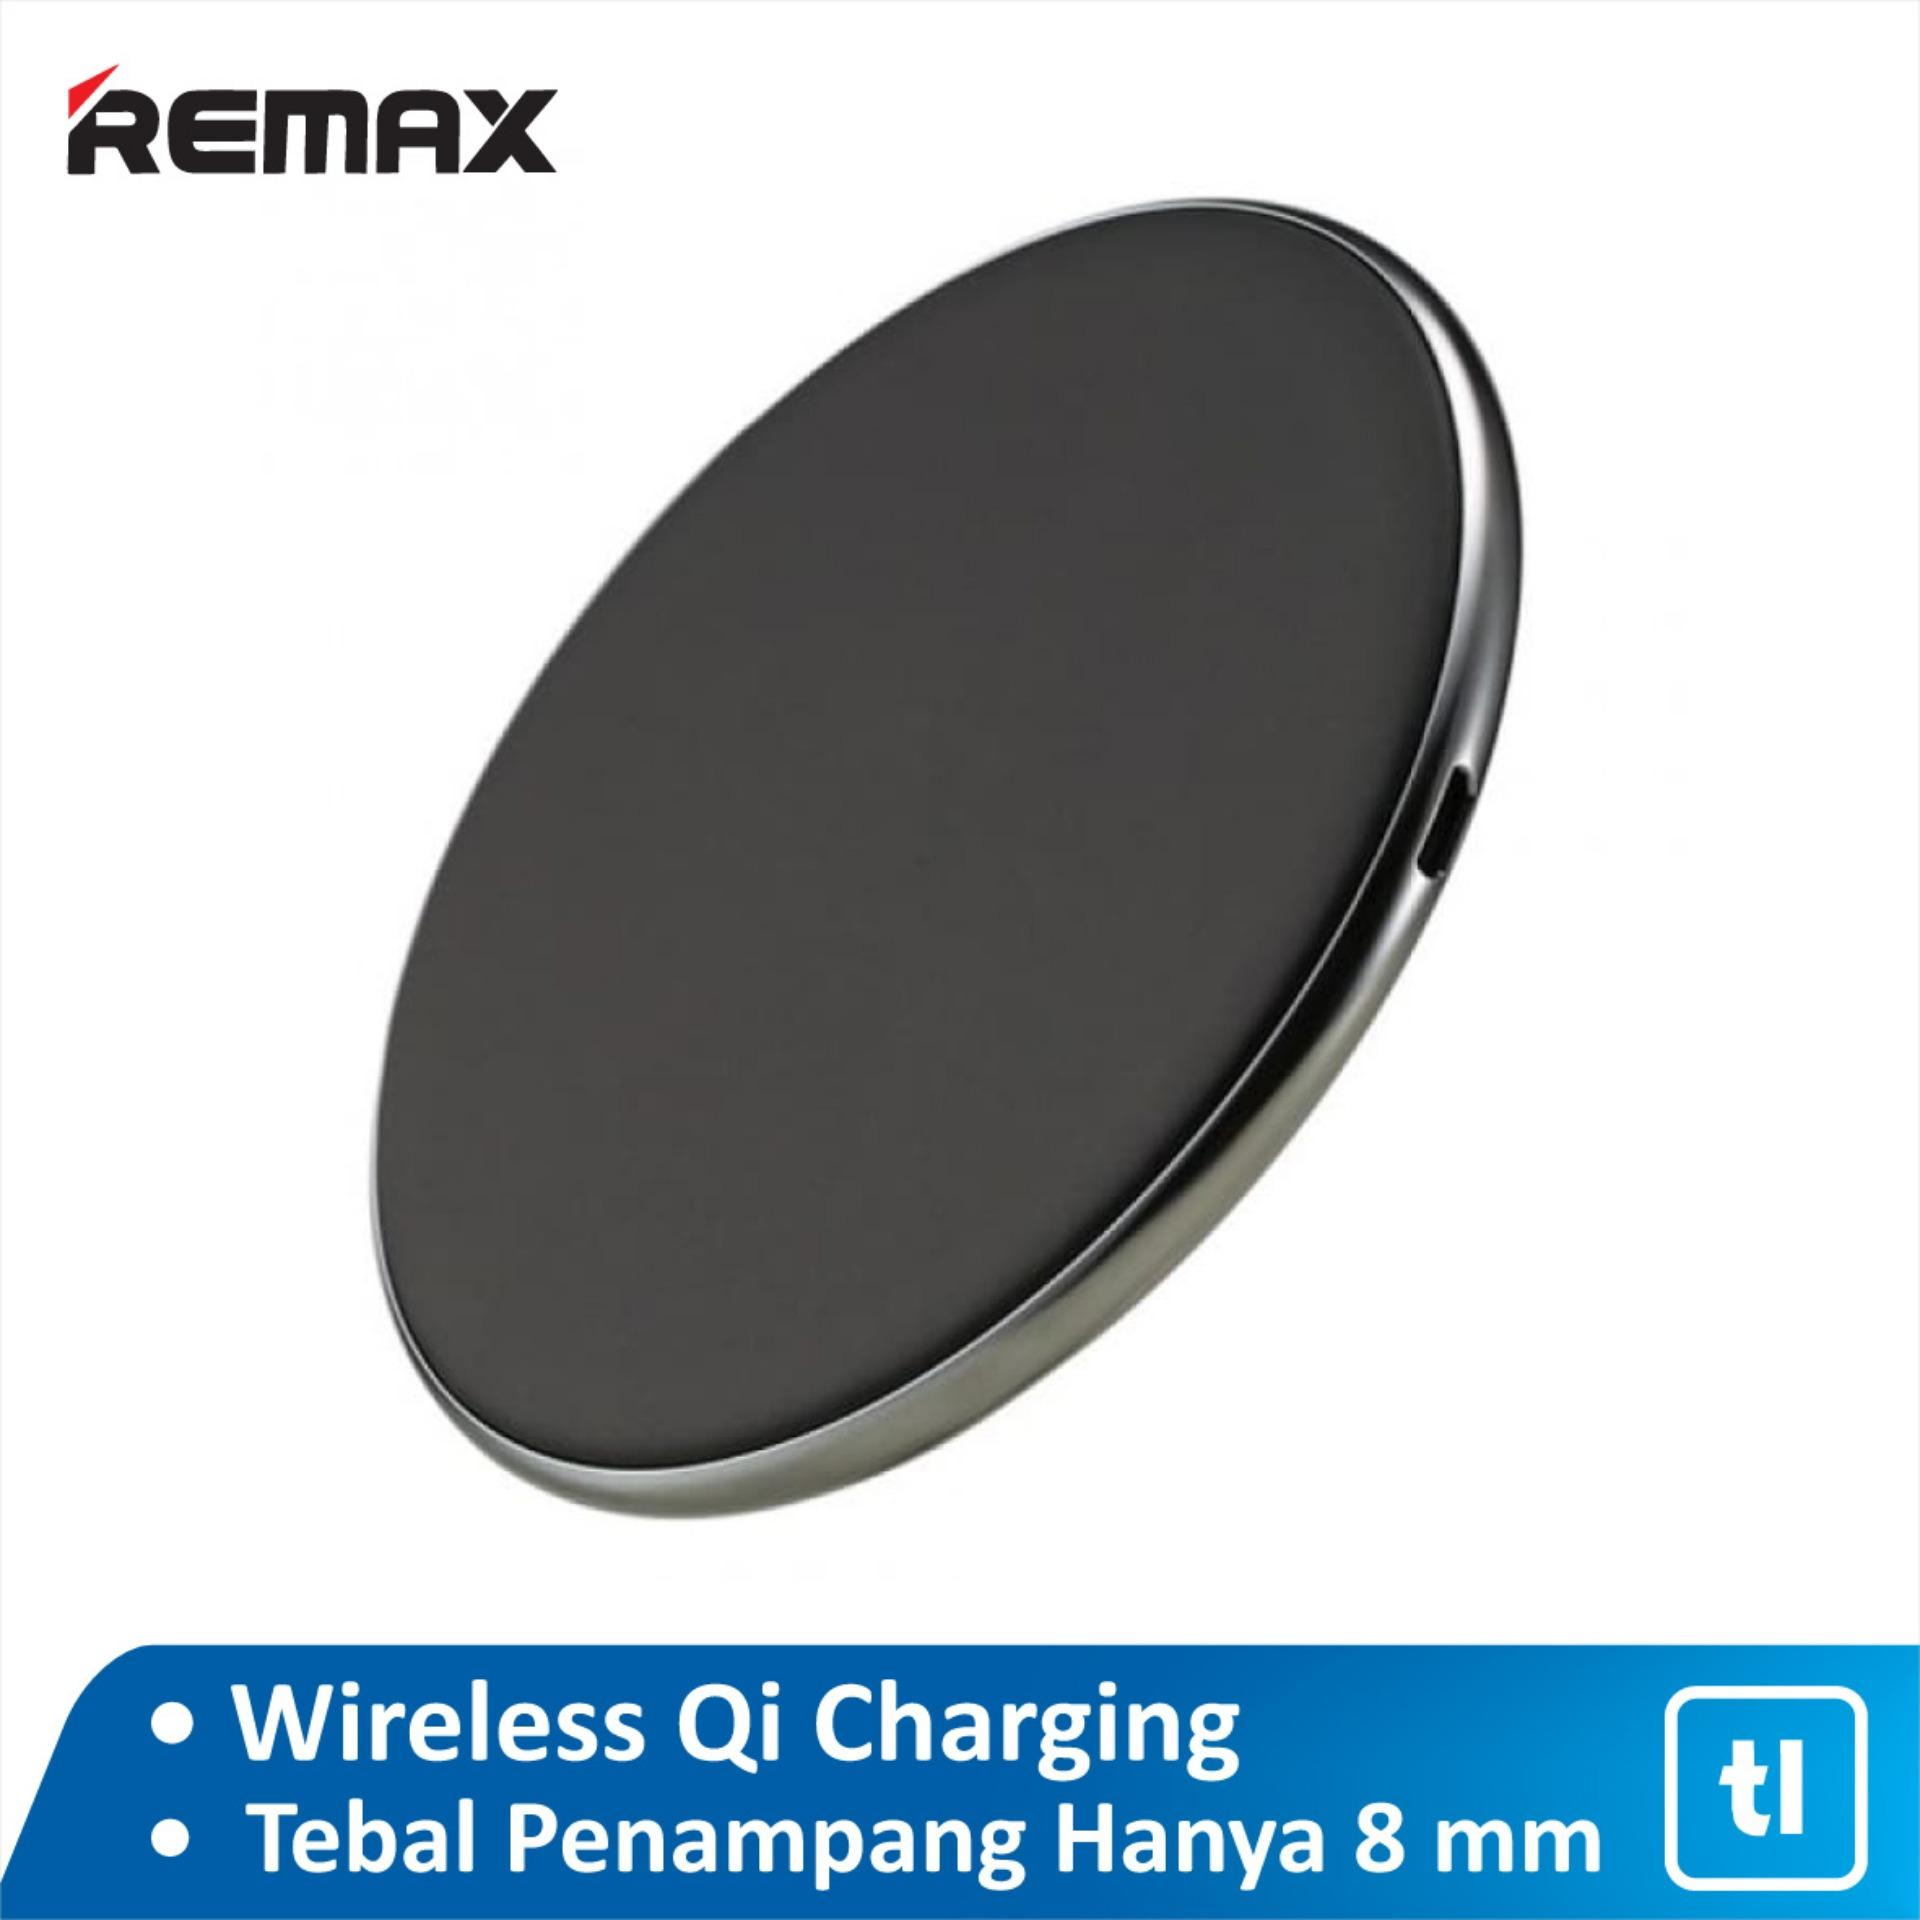 Remax Infinite Wireless Charger RP-W10 Original Garansi / Wireless Charger Murah / Wireless Charger Terbaik / Wireless Charger Murah Terbaik / Wireless Charger Samsung / Wireless Charger iPhone